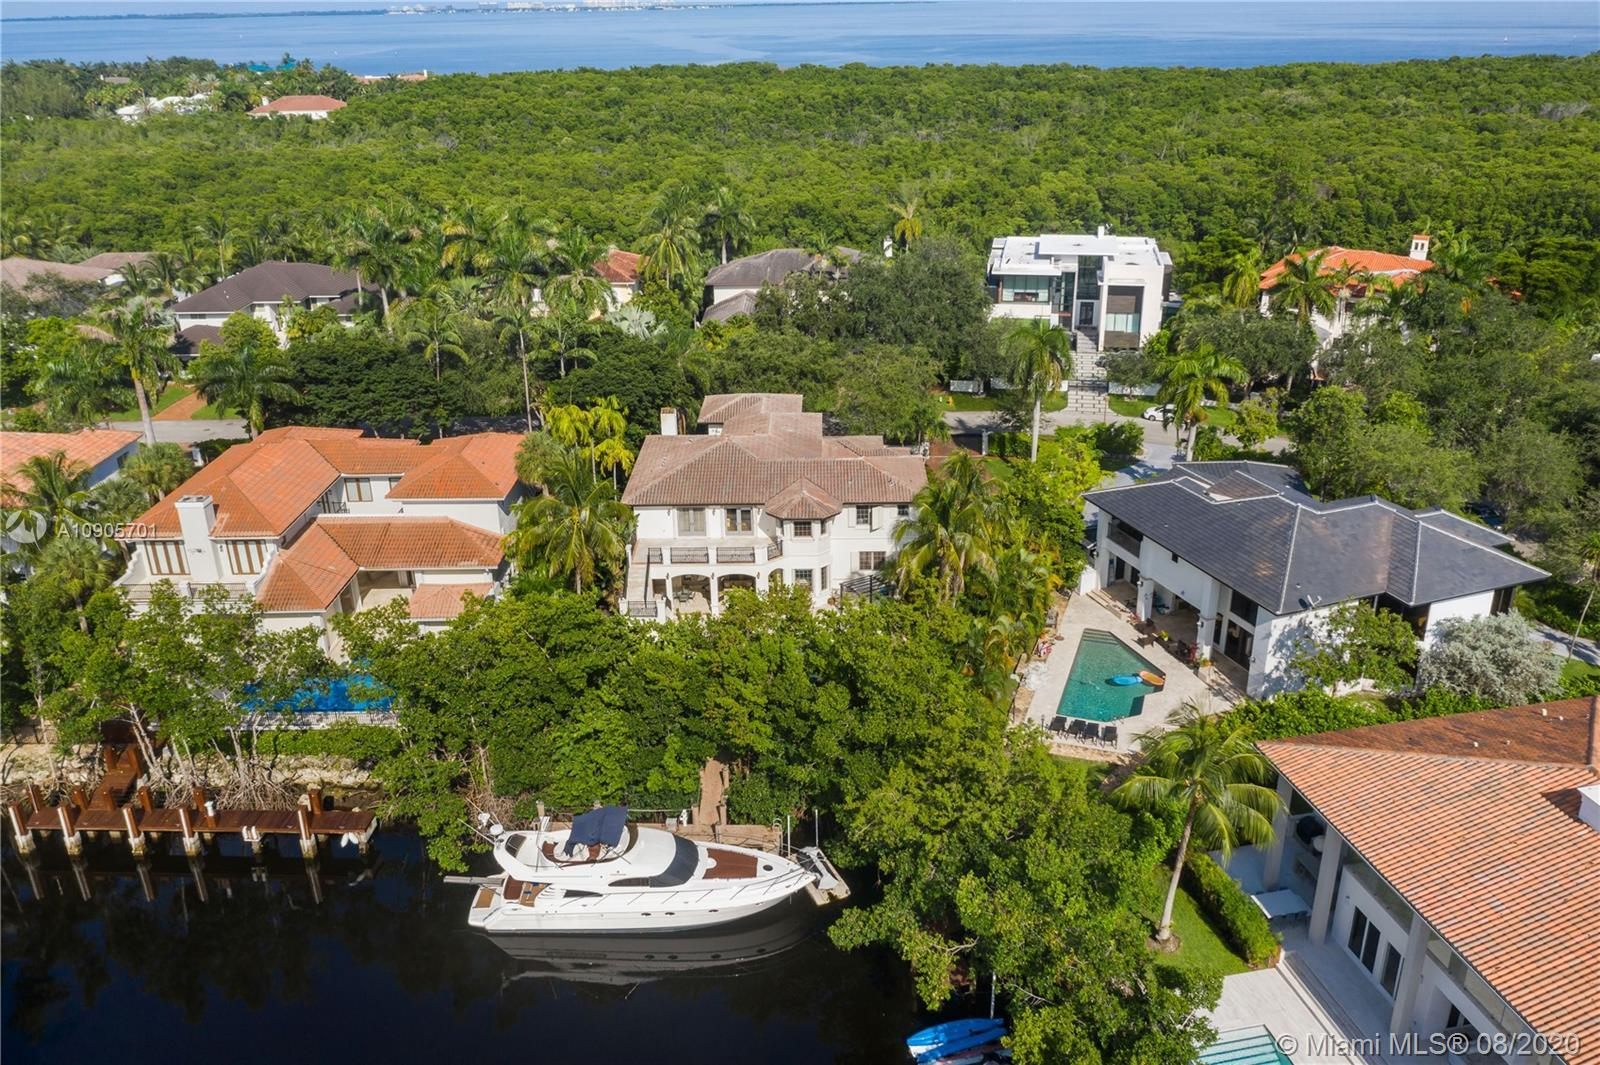 Mediterranean, timeless two-story waterfront in one of Miami's most prestigious neighborhoods. Fits